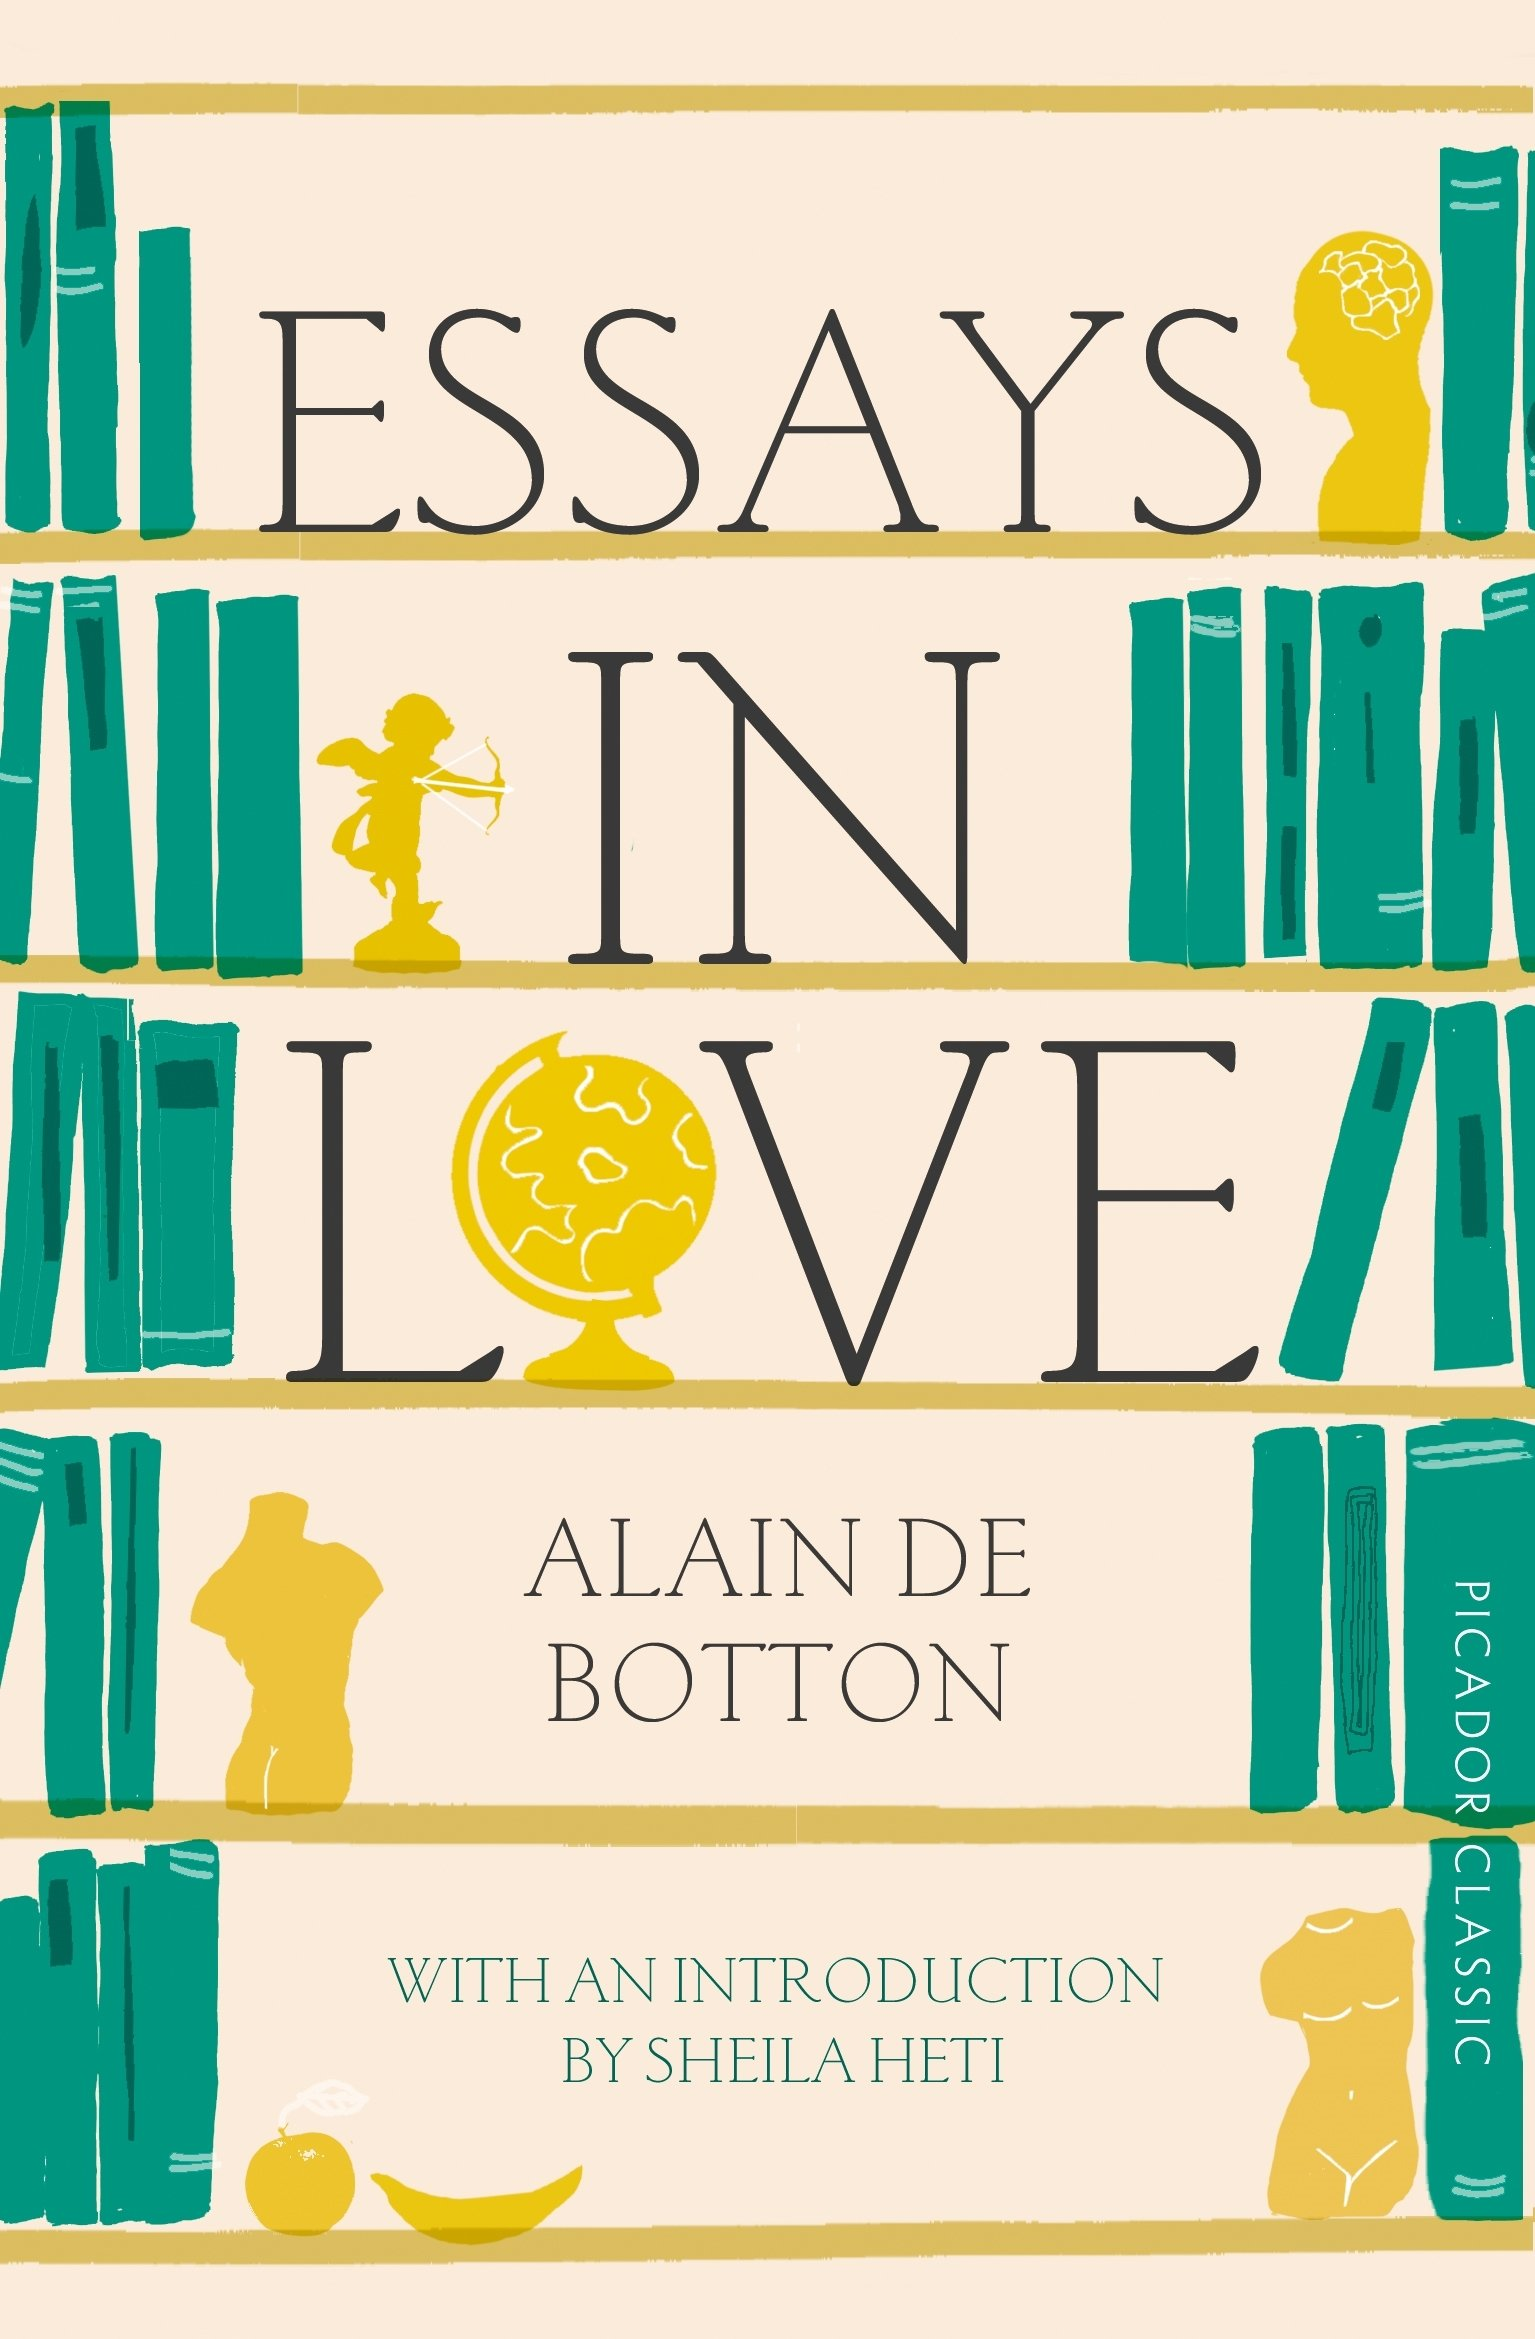 008 Essays On Love Essay Example Awesome Alain De Botton Quotes Review Full